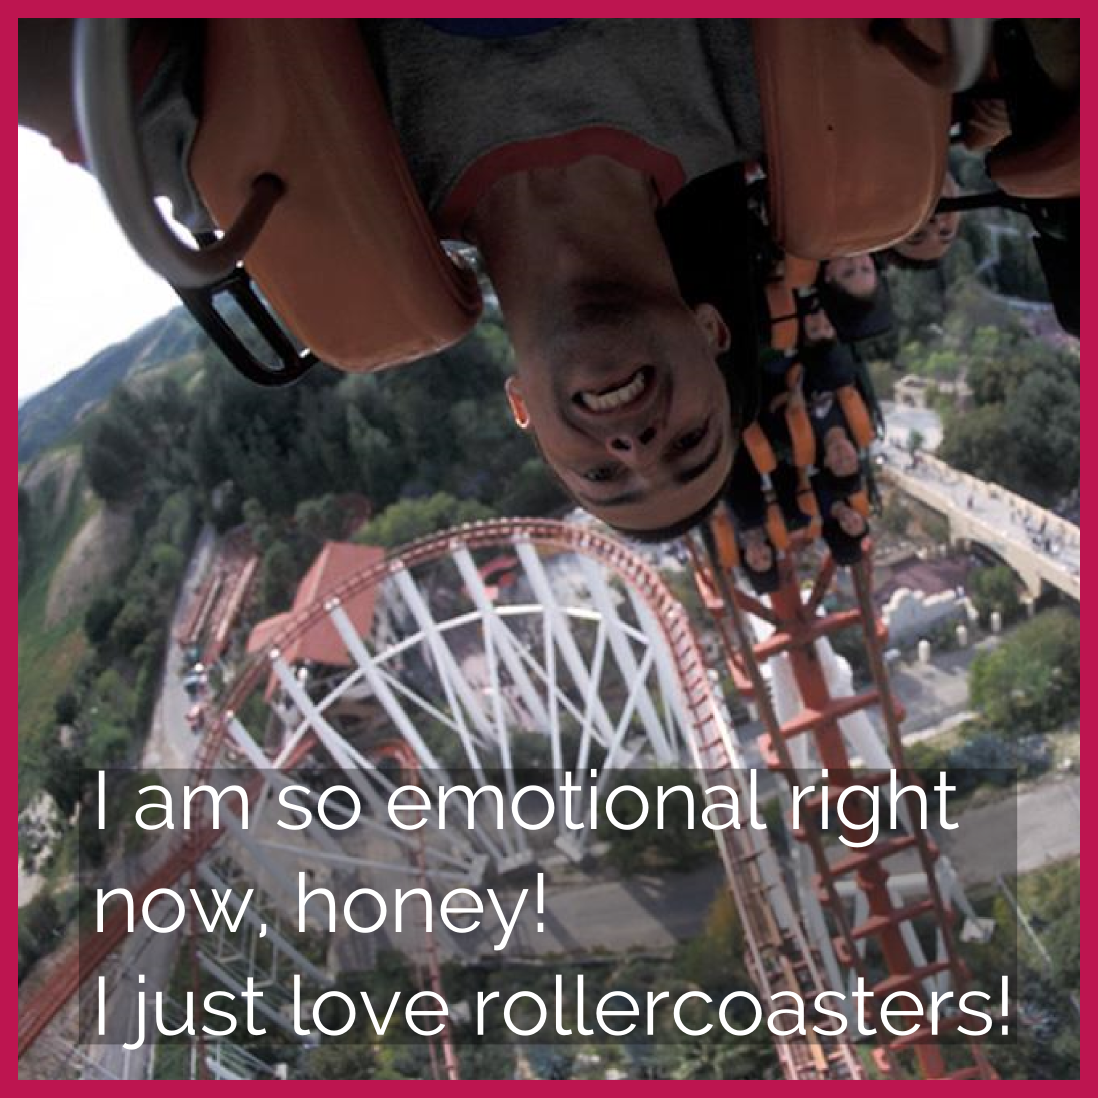 'Emocinado' means 'exciting' in Spanish but doesn't it look more like 'emotional' So don't get 'emotional' on roller coasters!